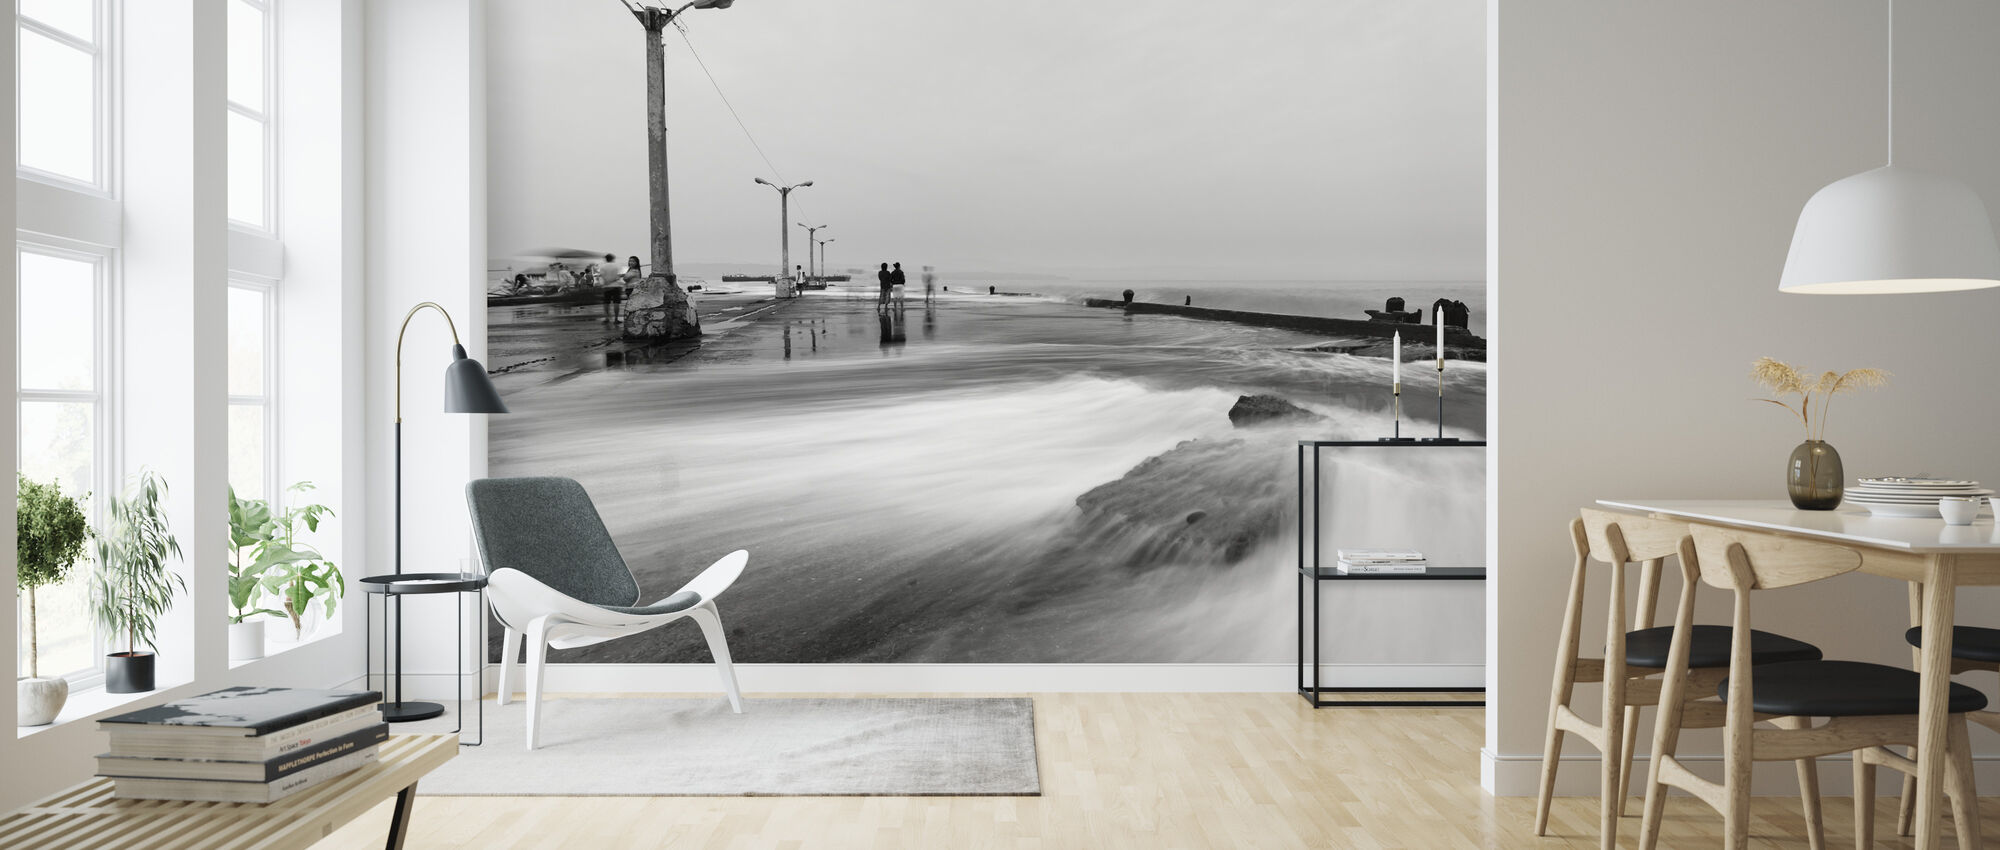 Overflowing Sea Water in Sta Ana Wharf - Wallpaper - Living Room